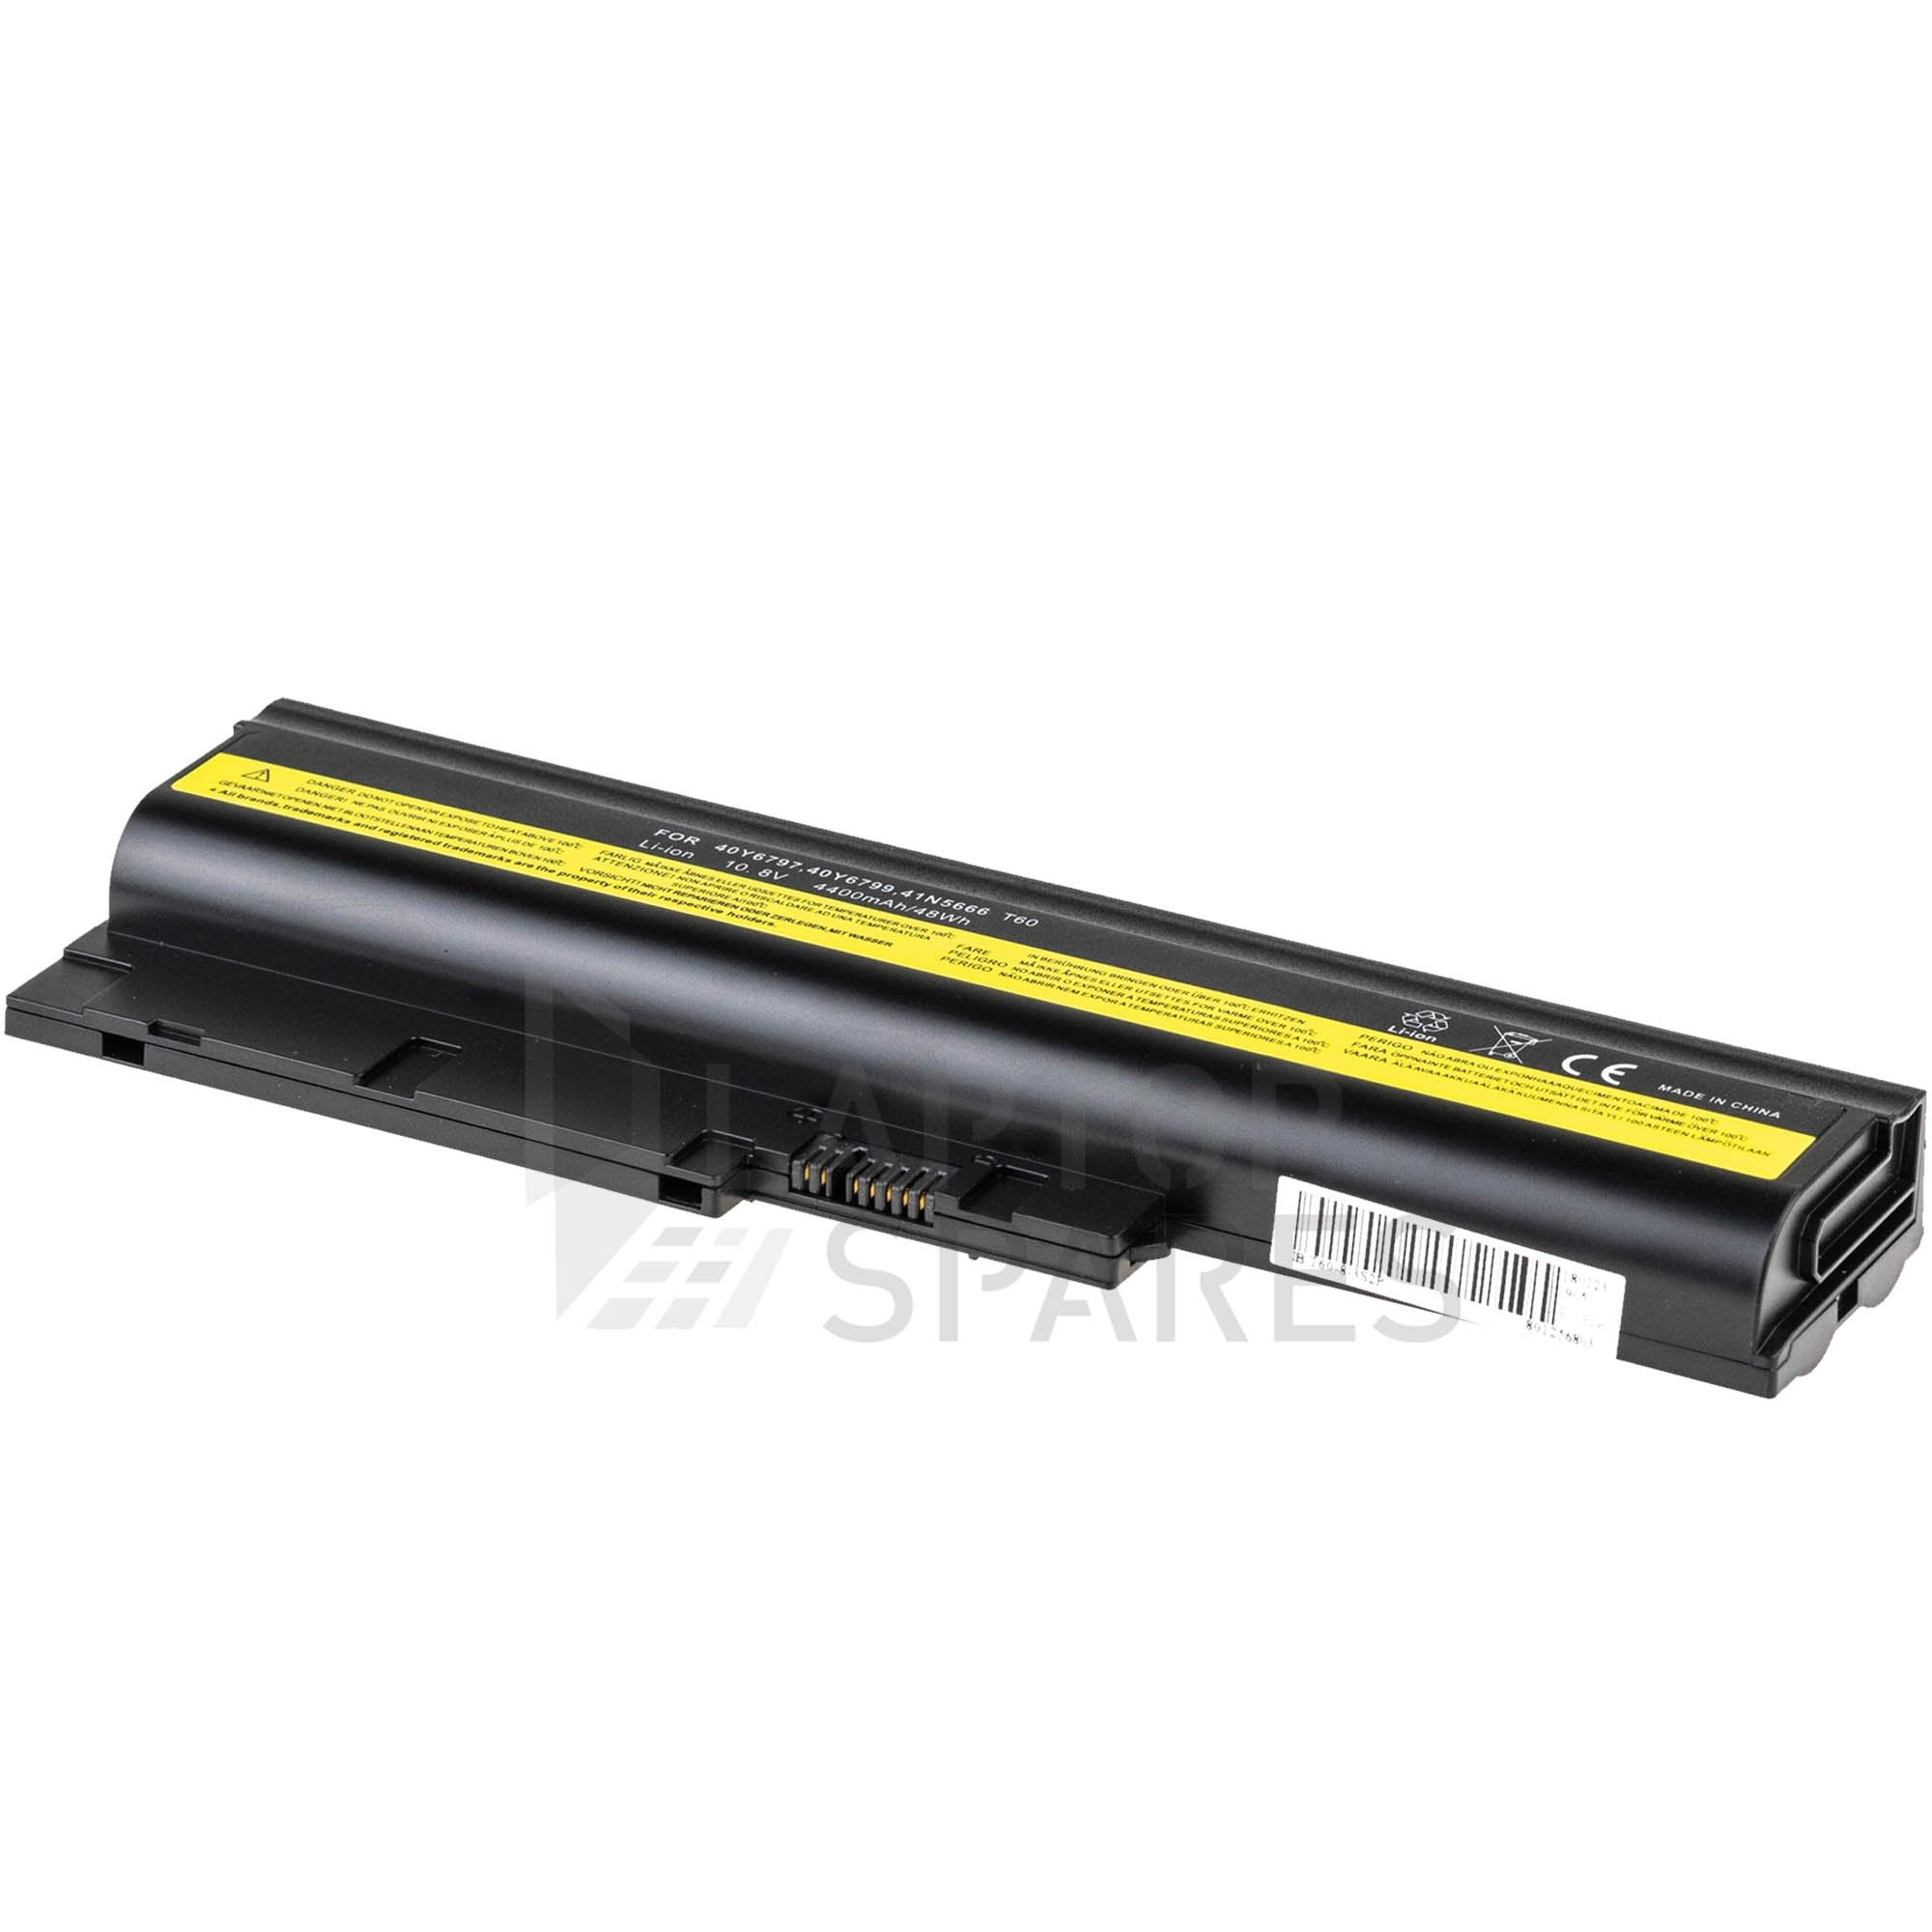 Lenovo ThinkPad Z61m 0660 0672 0673 0674 0675 4400mAh 6 Cell Battery